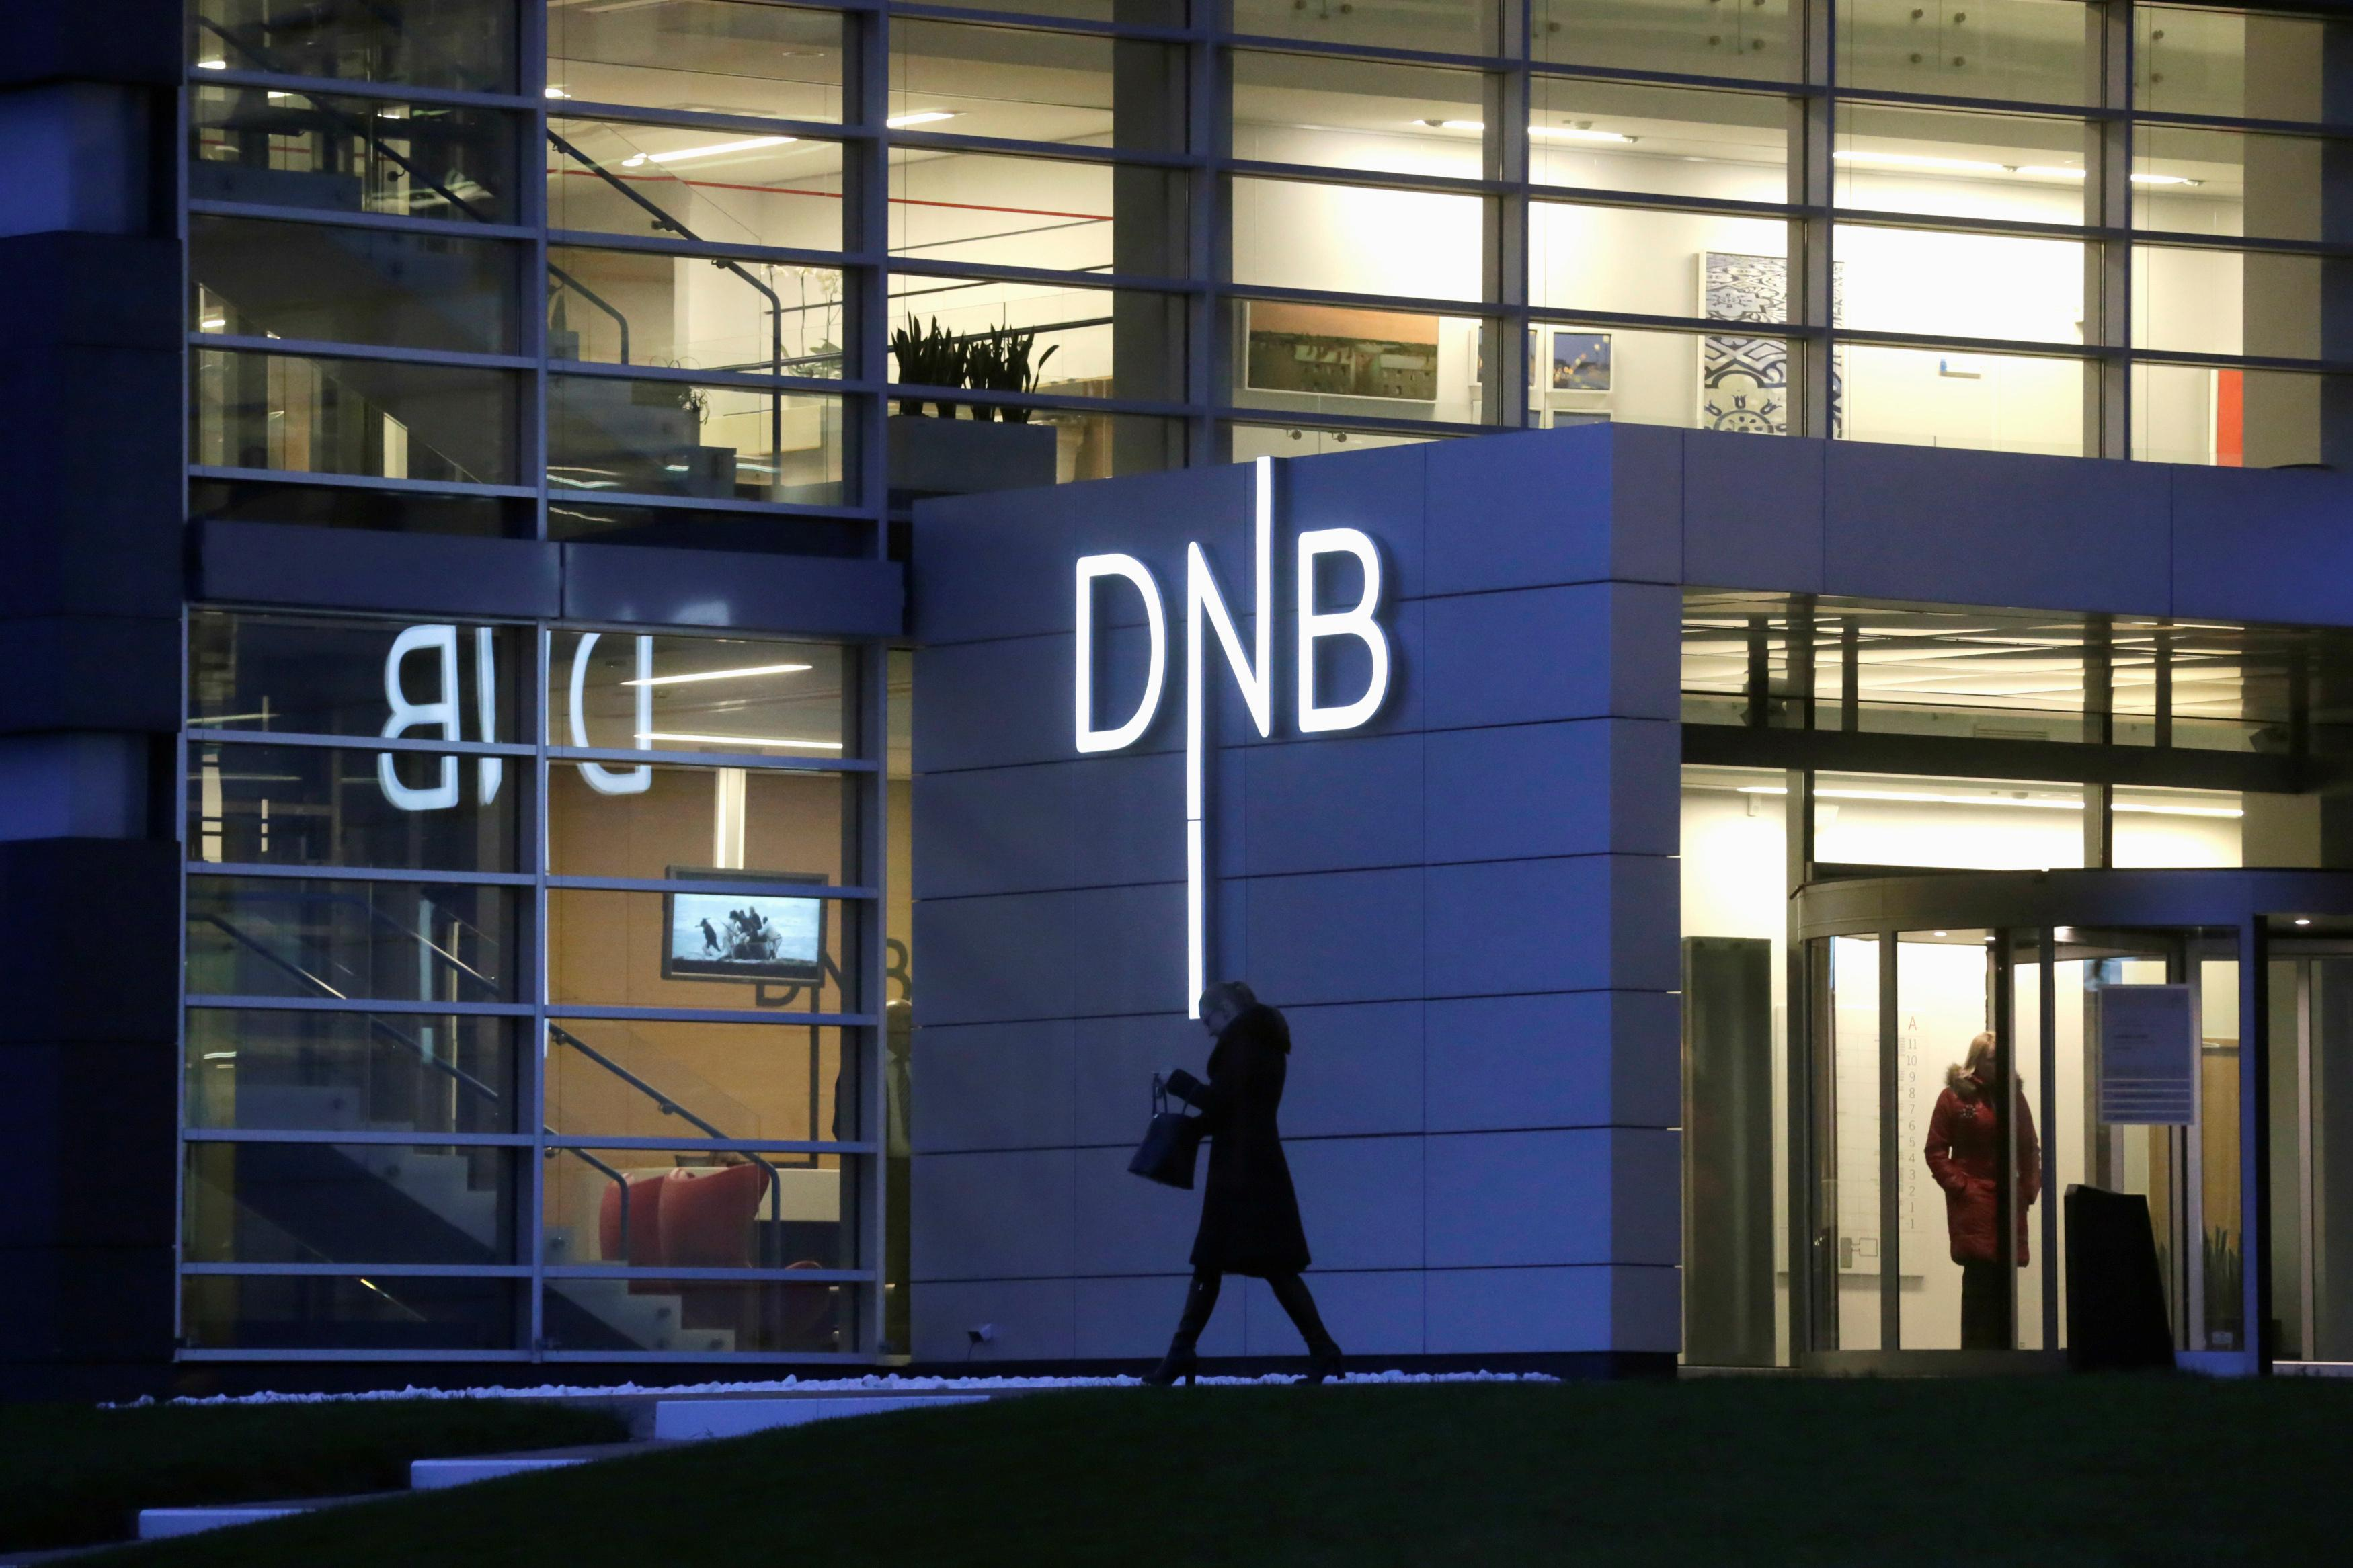 DNB failed to comply with anti-money laundering rules: Norway watchdog